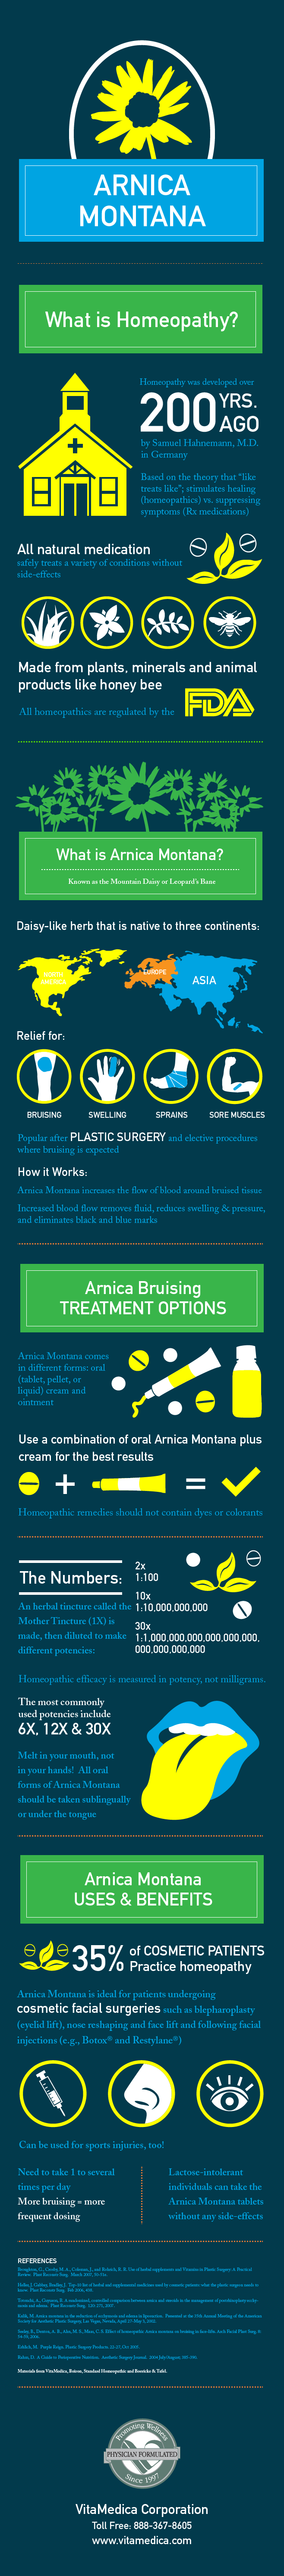 Homeopathic Arnica Montana - A Natural Treatment for Bruising